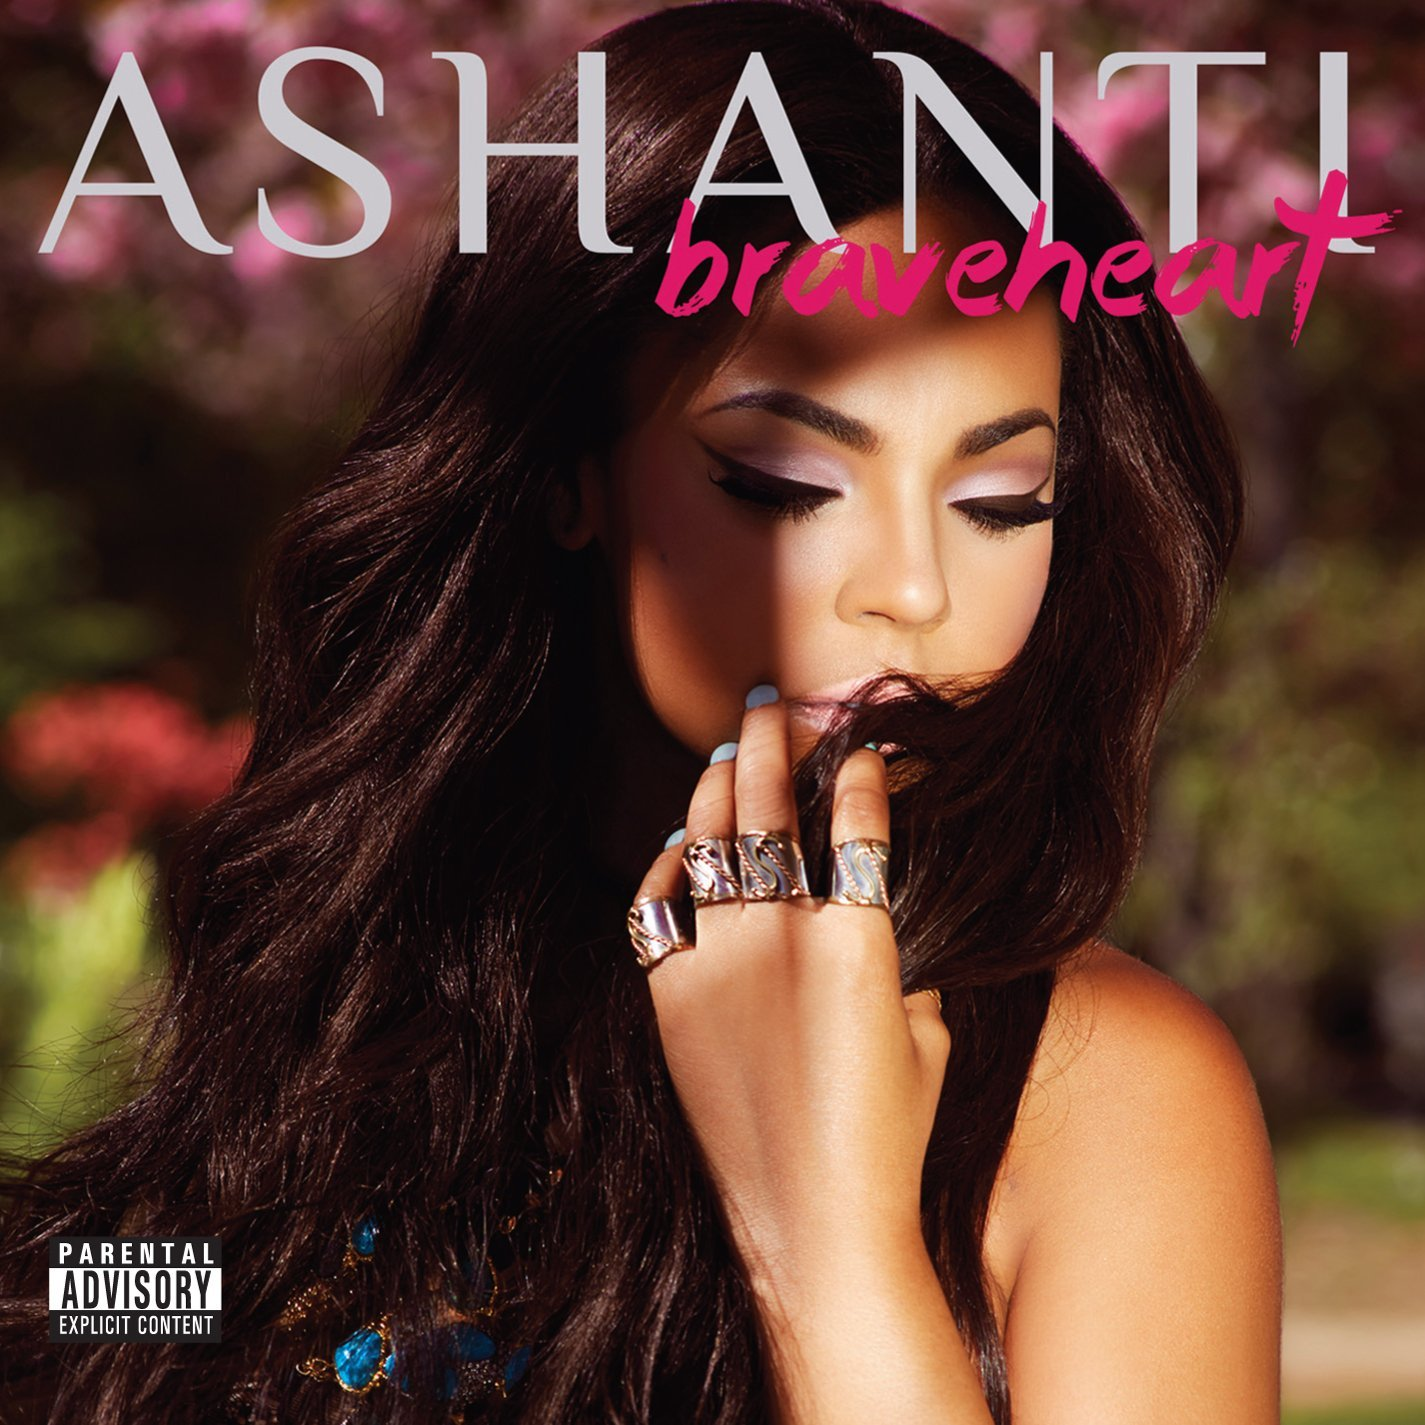 ashanti braveheart that grape juice she is diva 2014jpg Katy Perry Re Enters UK Top Ten / Ashanti Makes Top 40 Debut